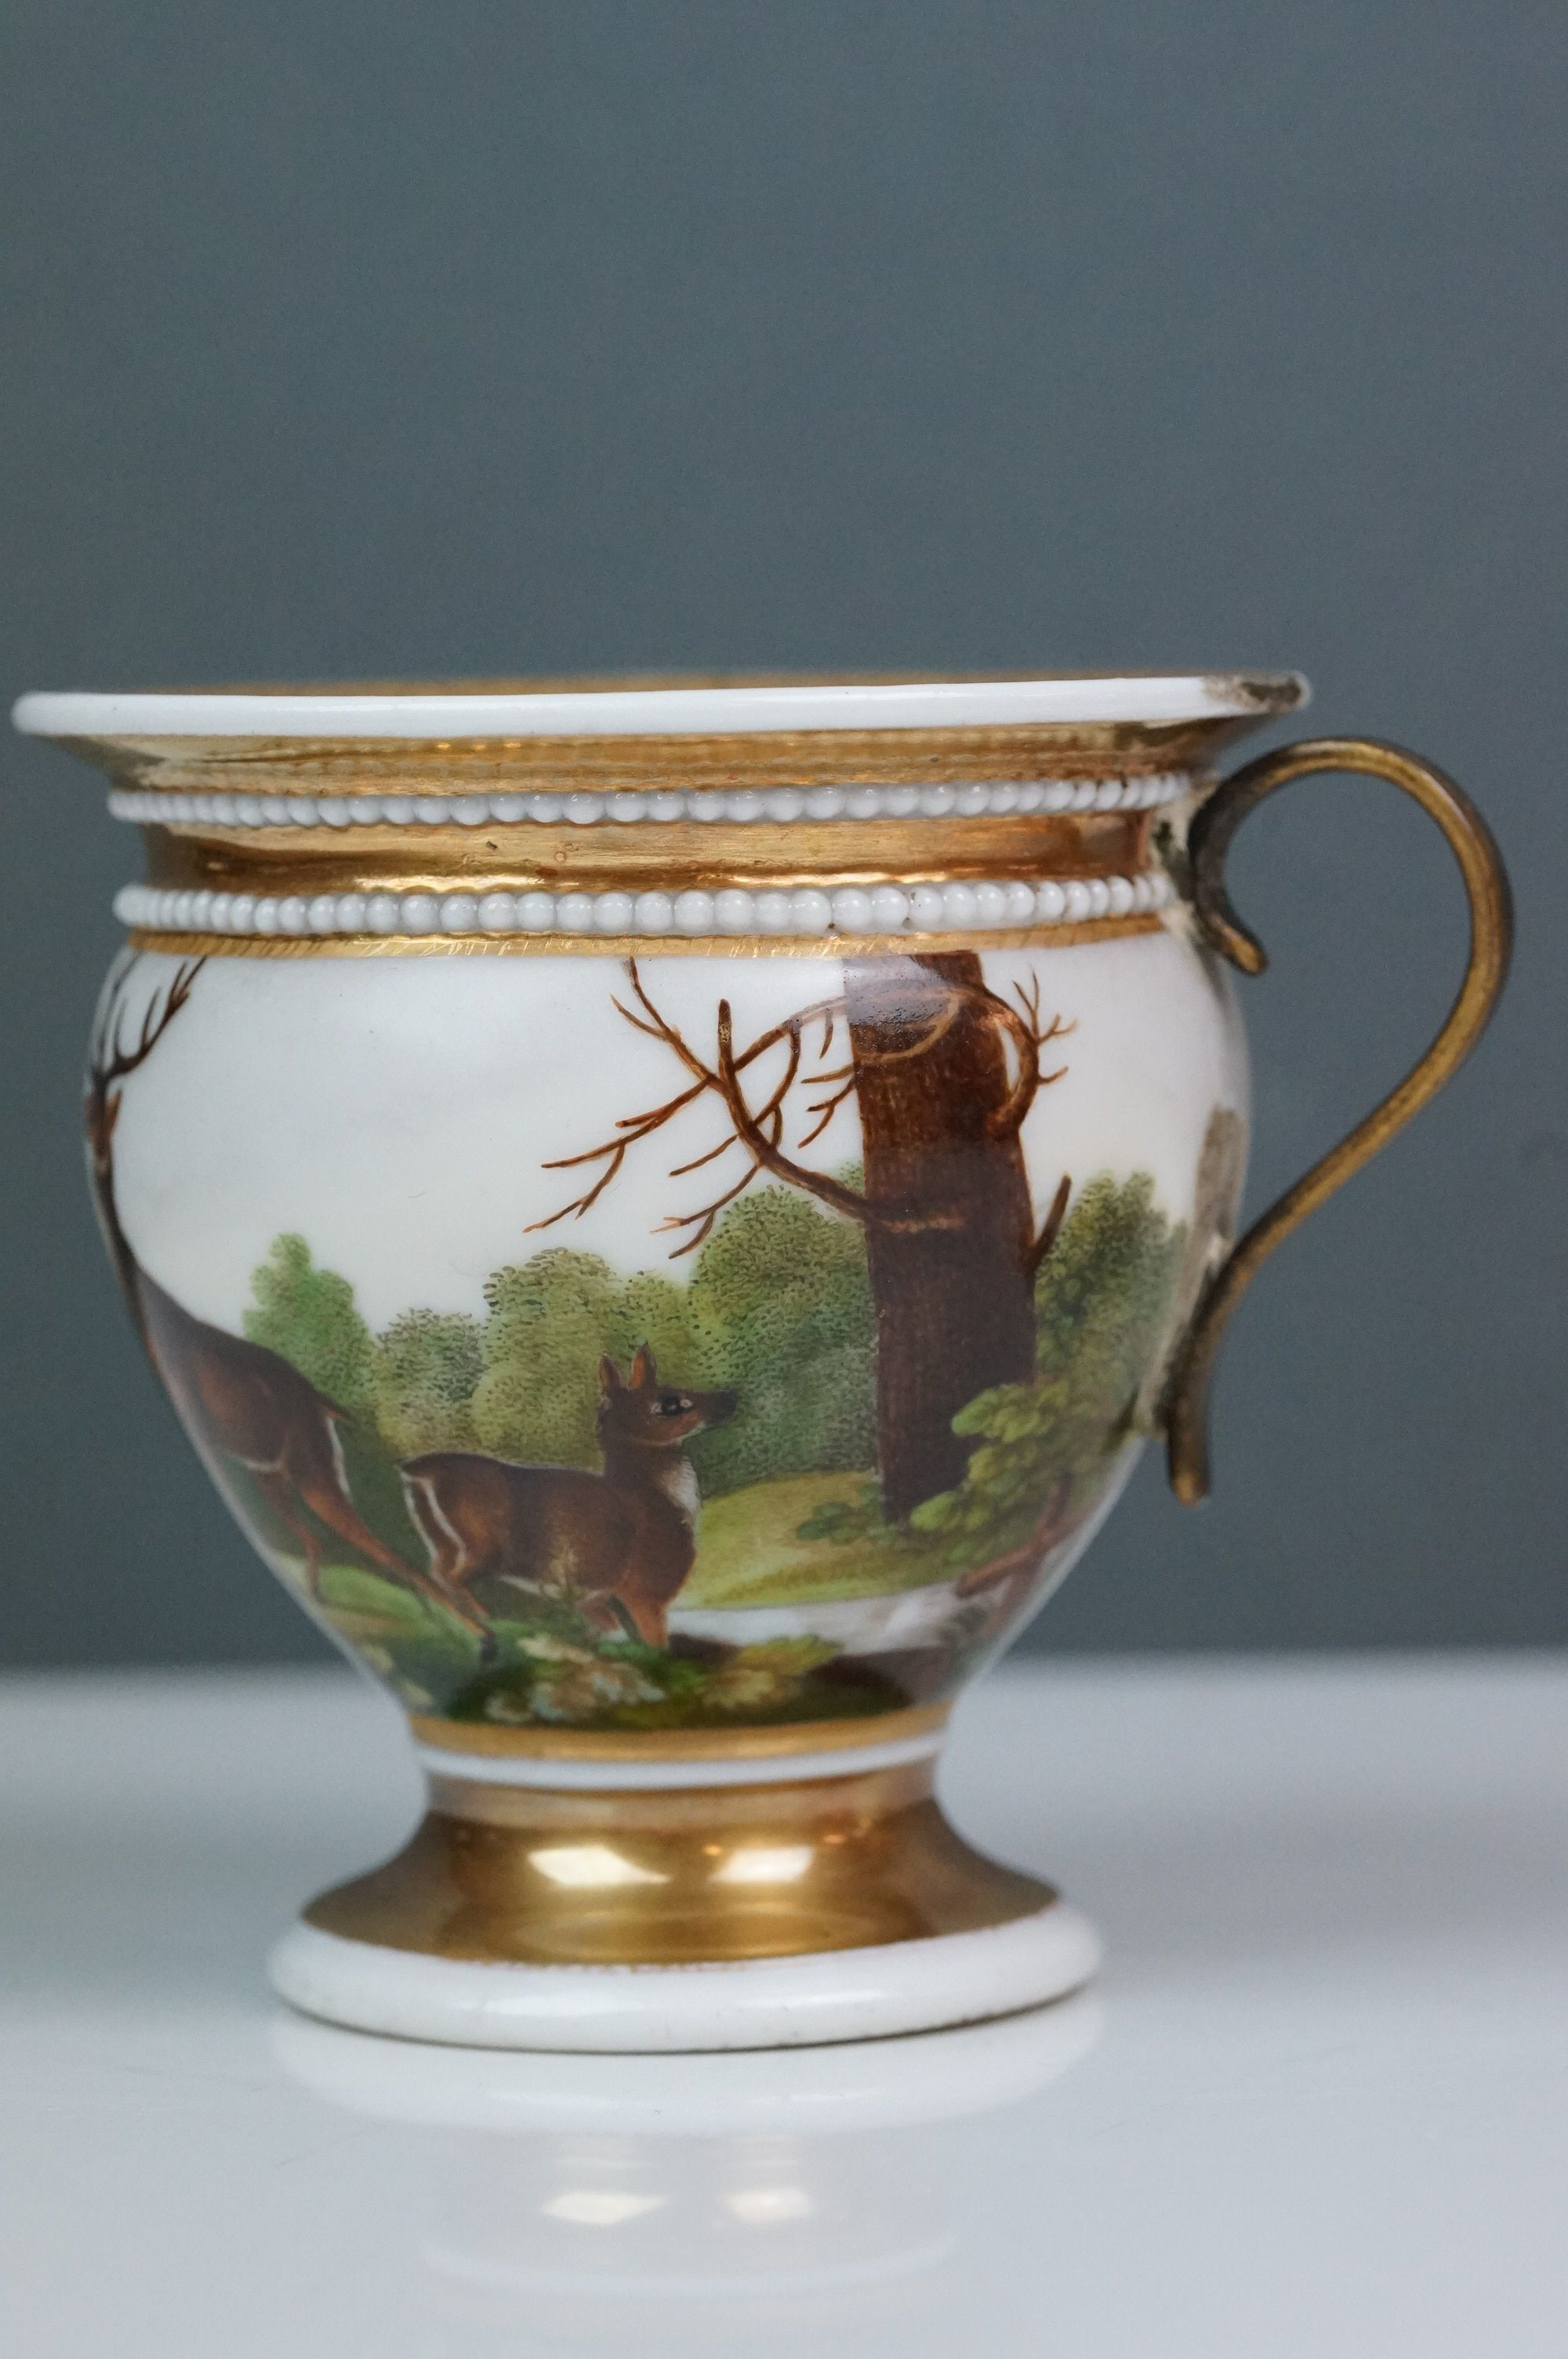 Pair of hand painted Dresden cups, each depicting a different scene: castle and lake scene with - Image 10 of 10